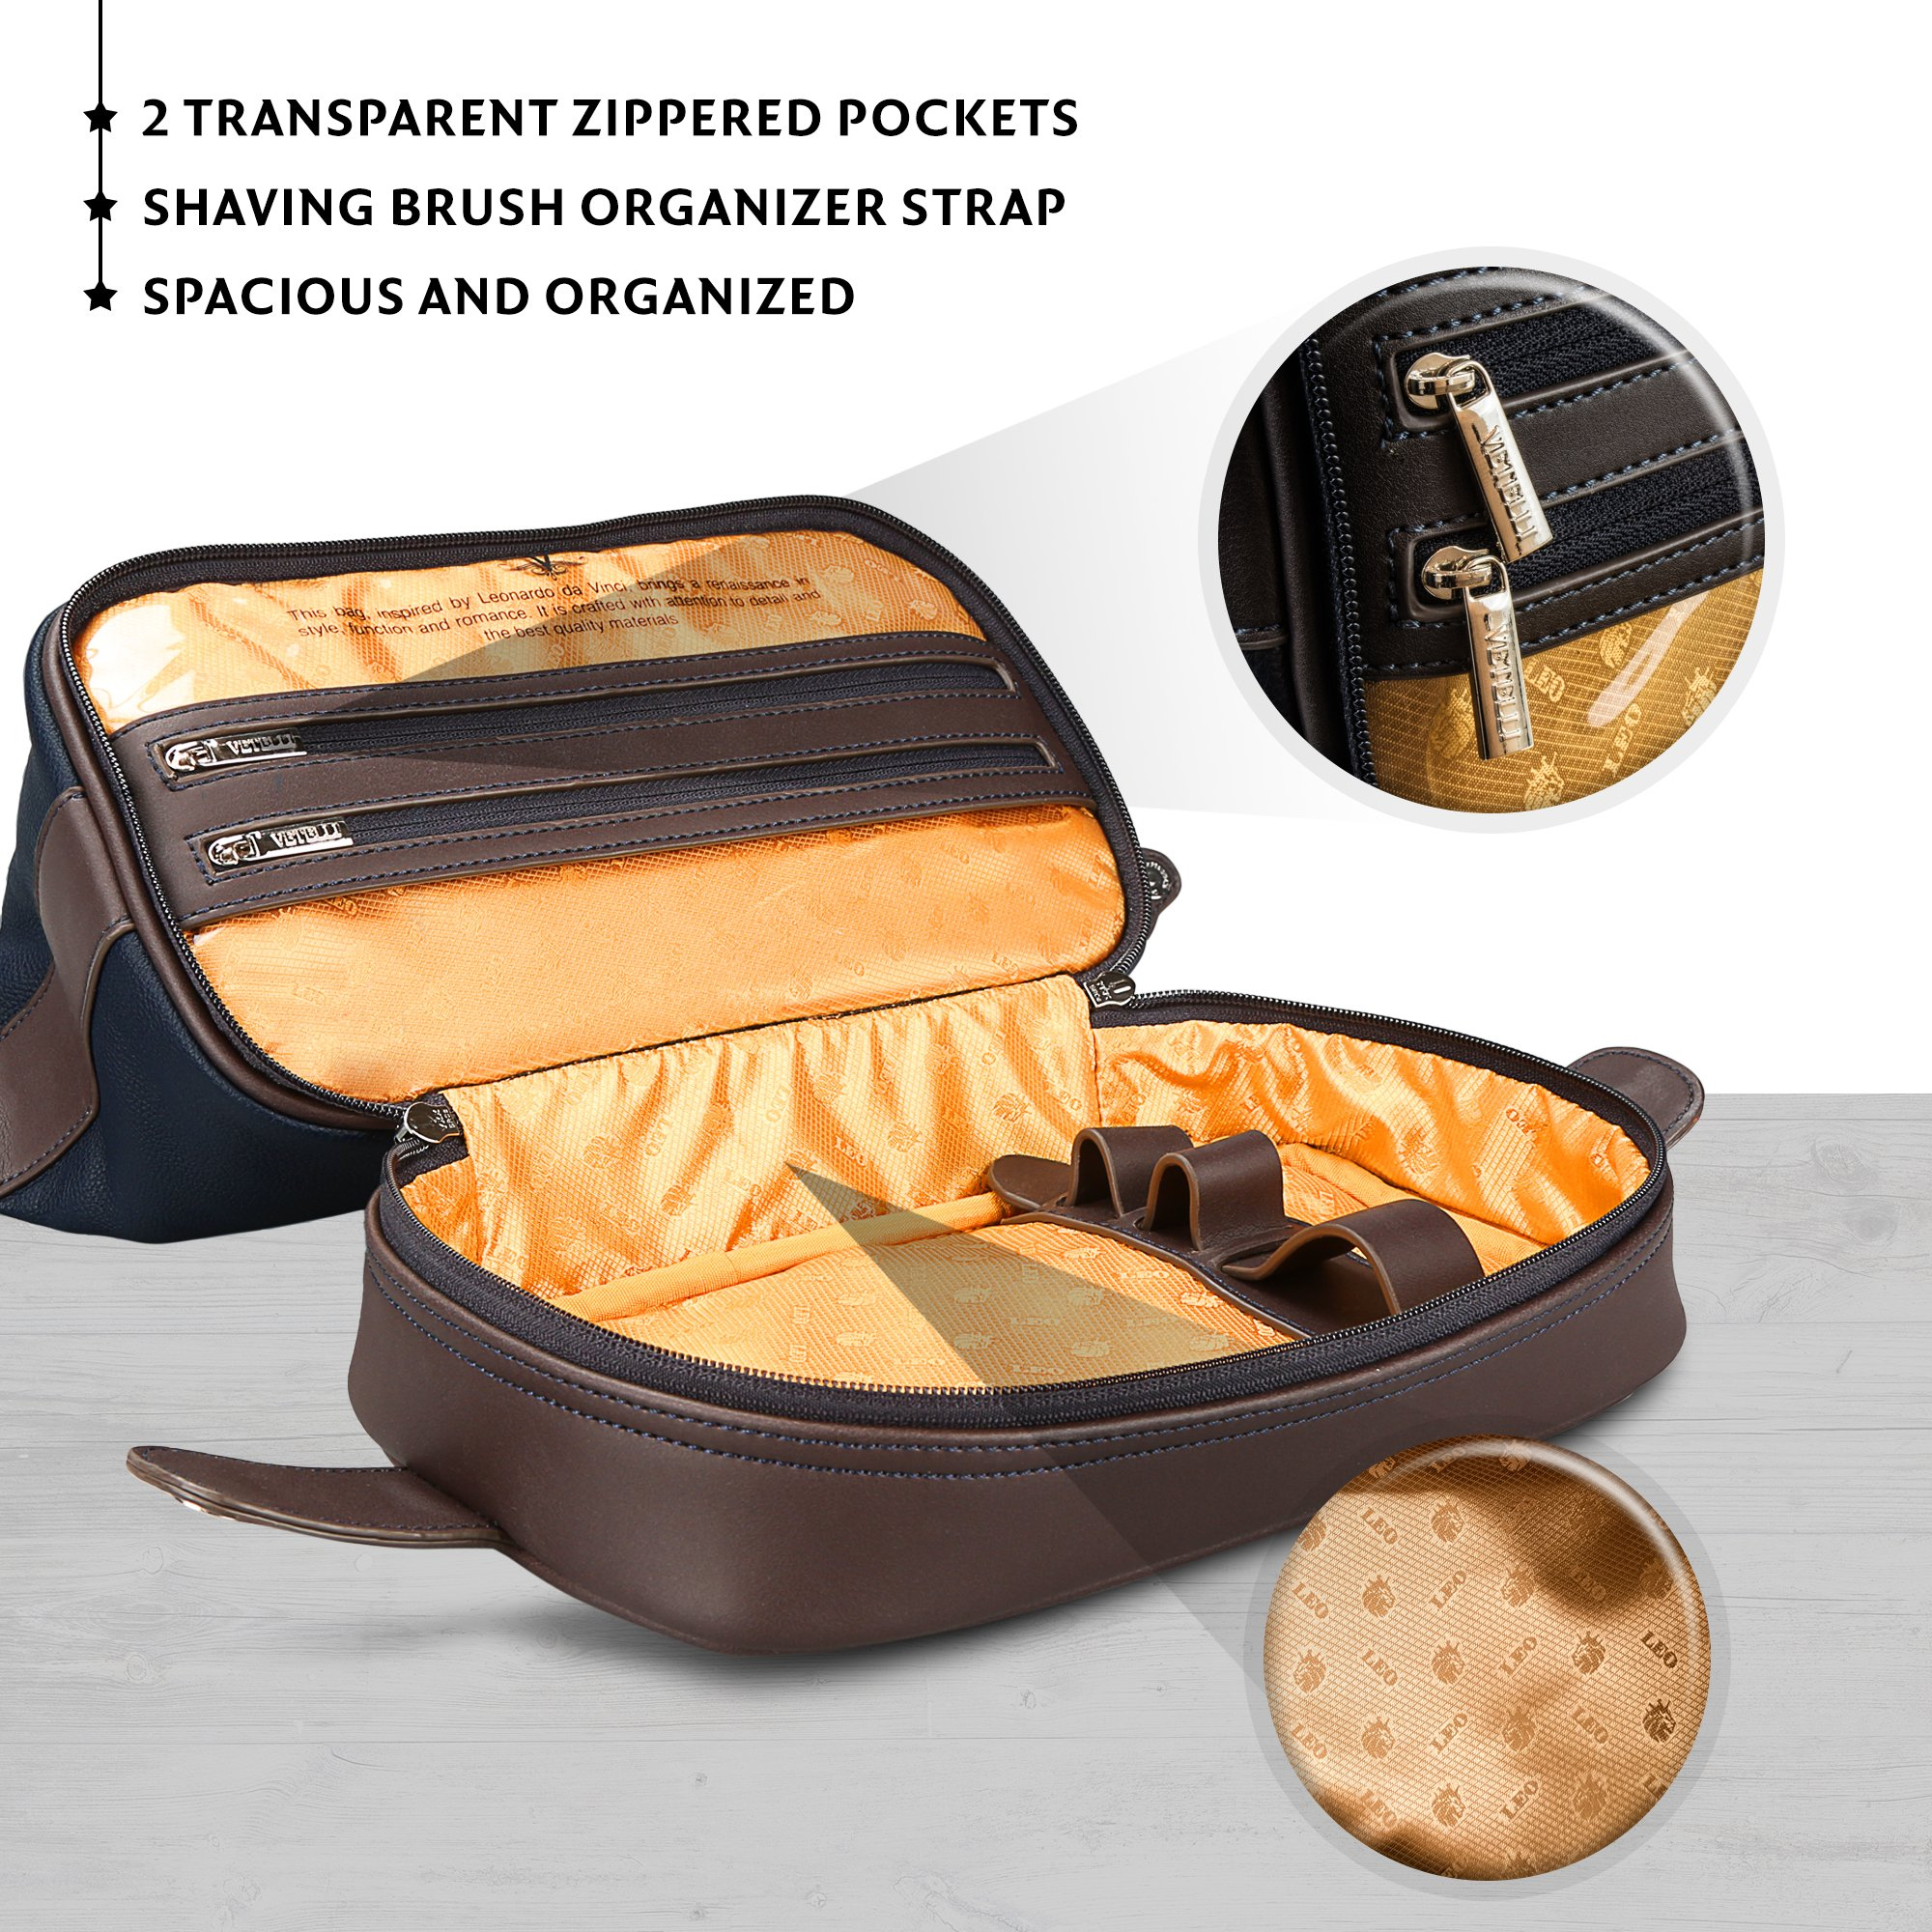 bddf1d1b34 SIMPLICITY IS THE ULTIMATE SOPHISTICATION - A premium quality - durable    versatile toiletry bag measuring 11.5